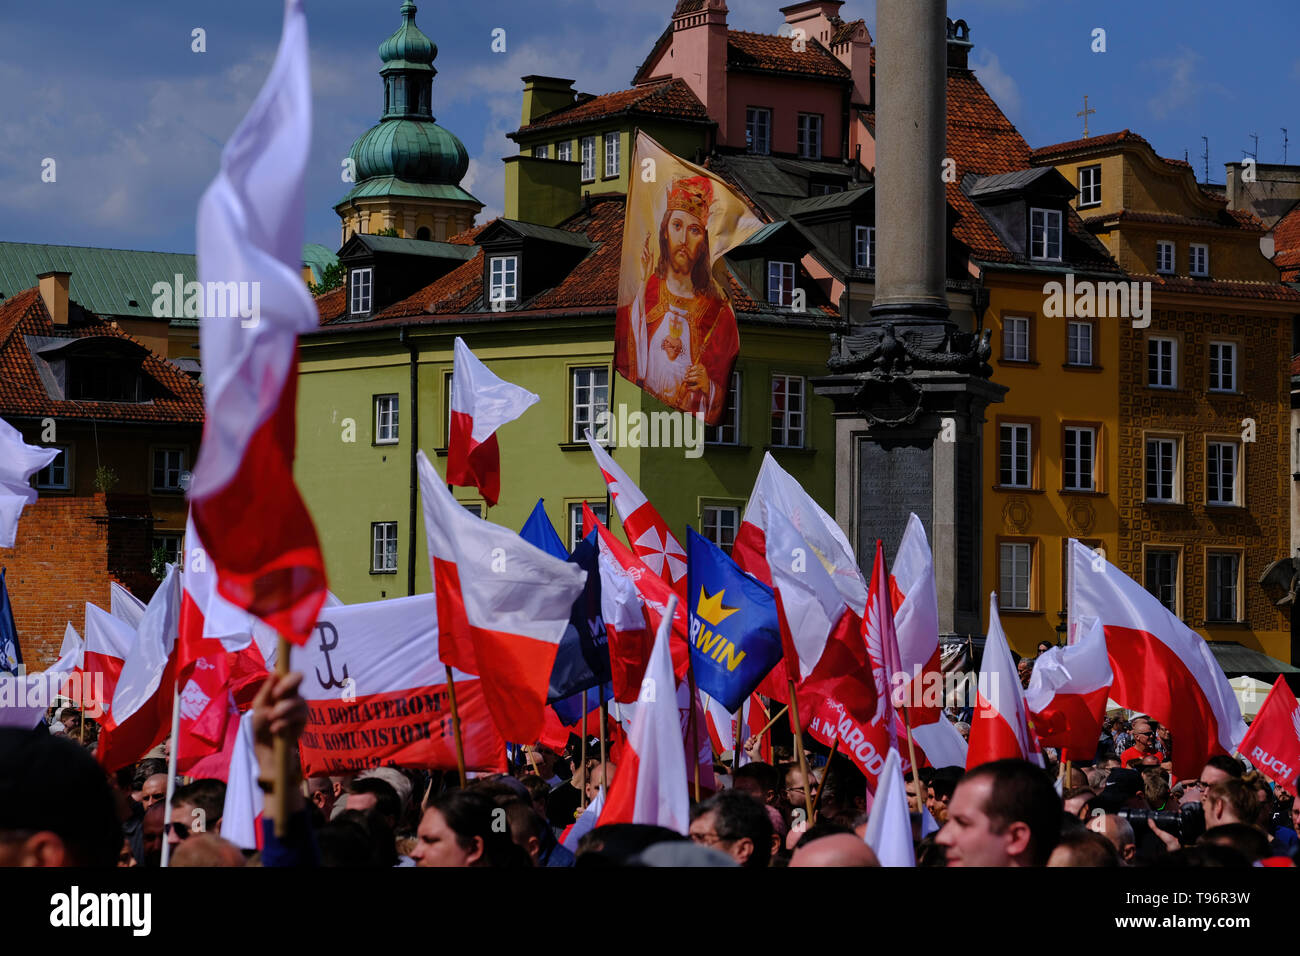 Anti EU demonstration organised by far right groups,  on the 15th aniversary of Poland joining the EU, 15 years ago Poland joined EU, Warsaw, Poland - Stock Image